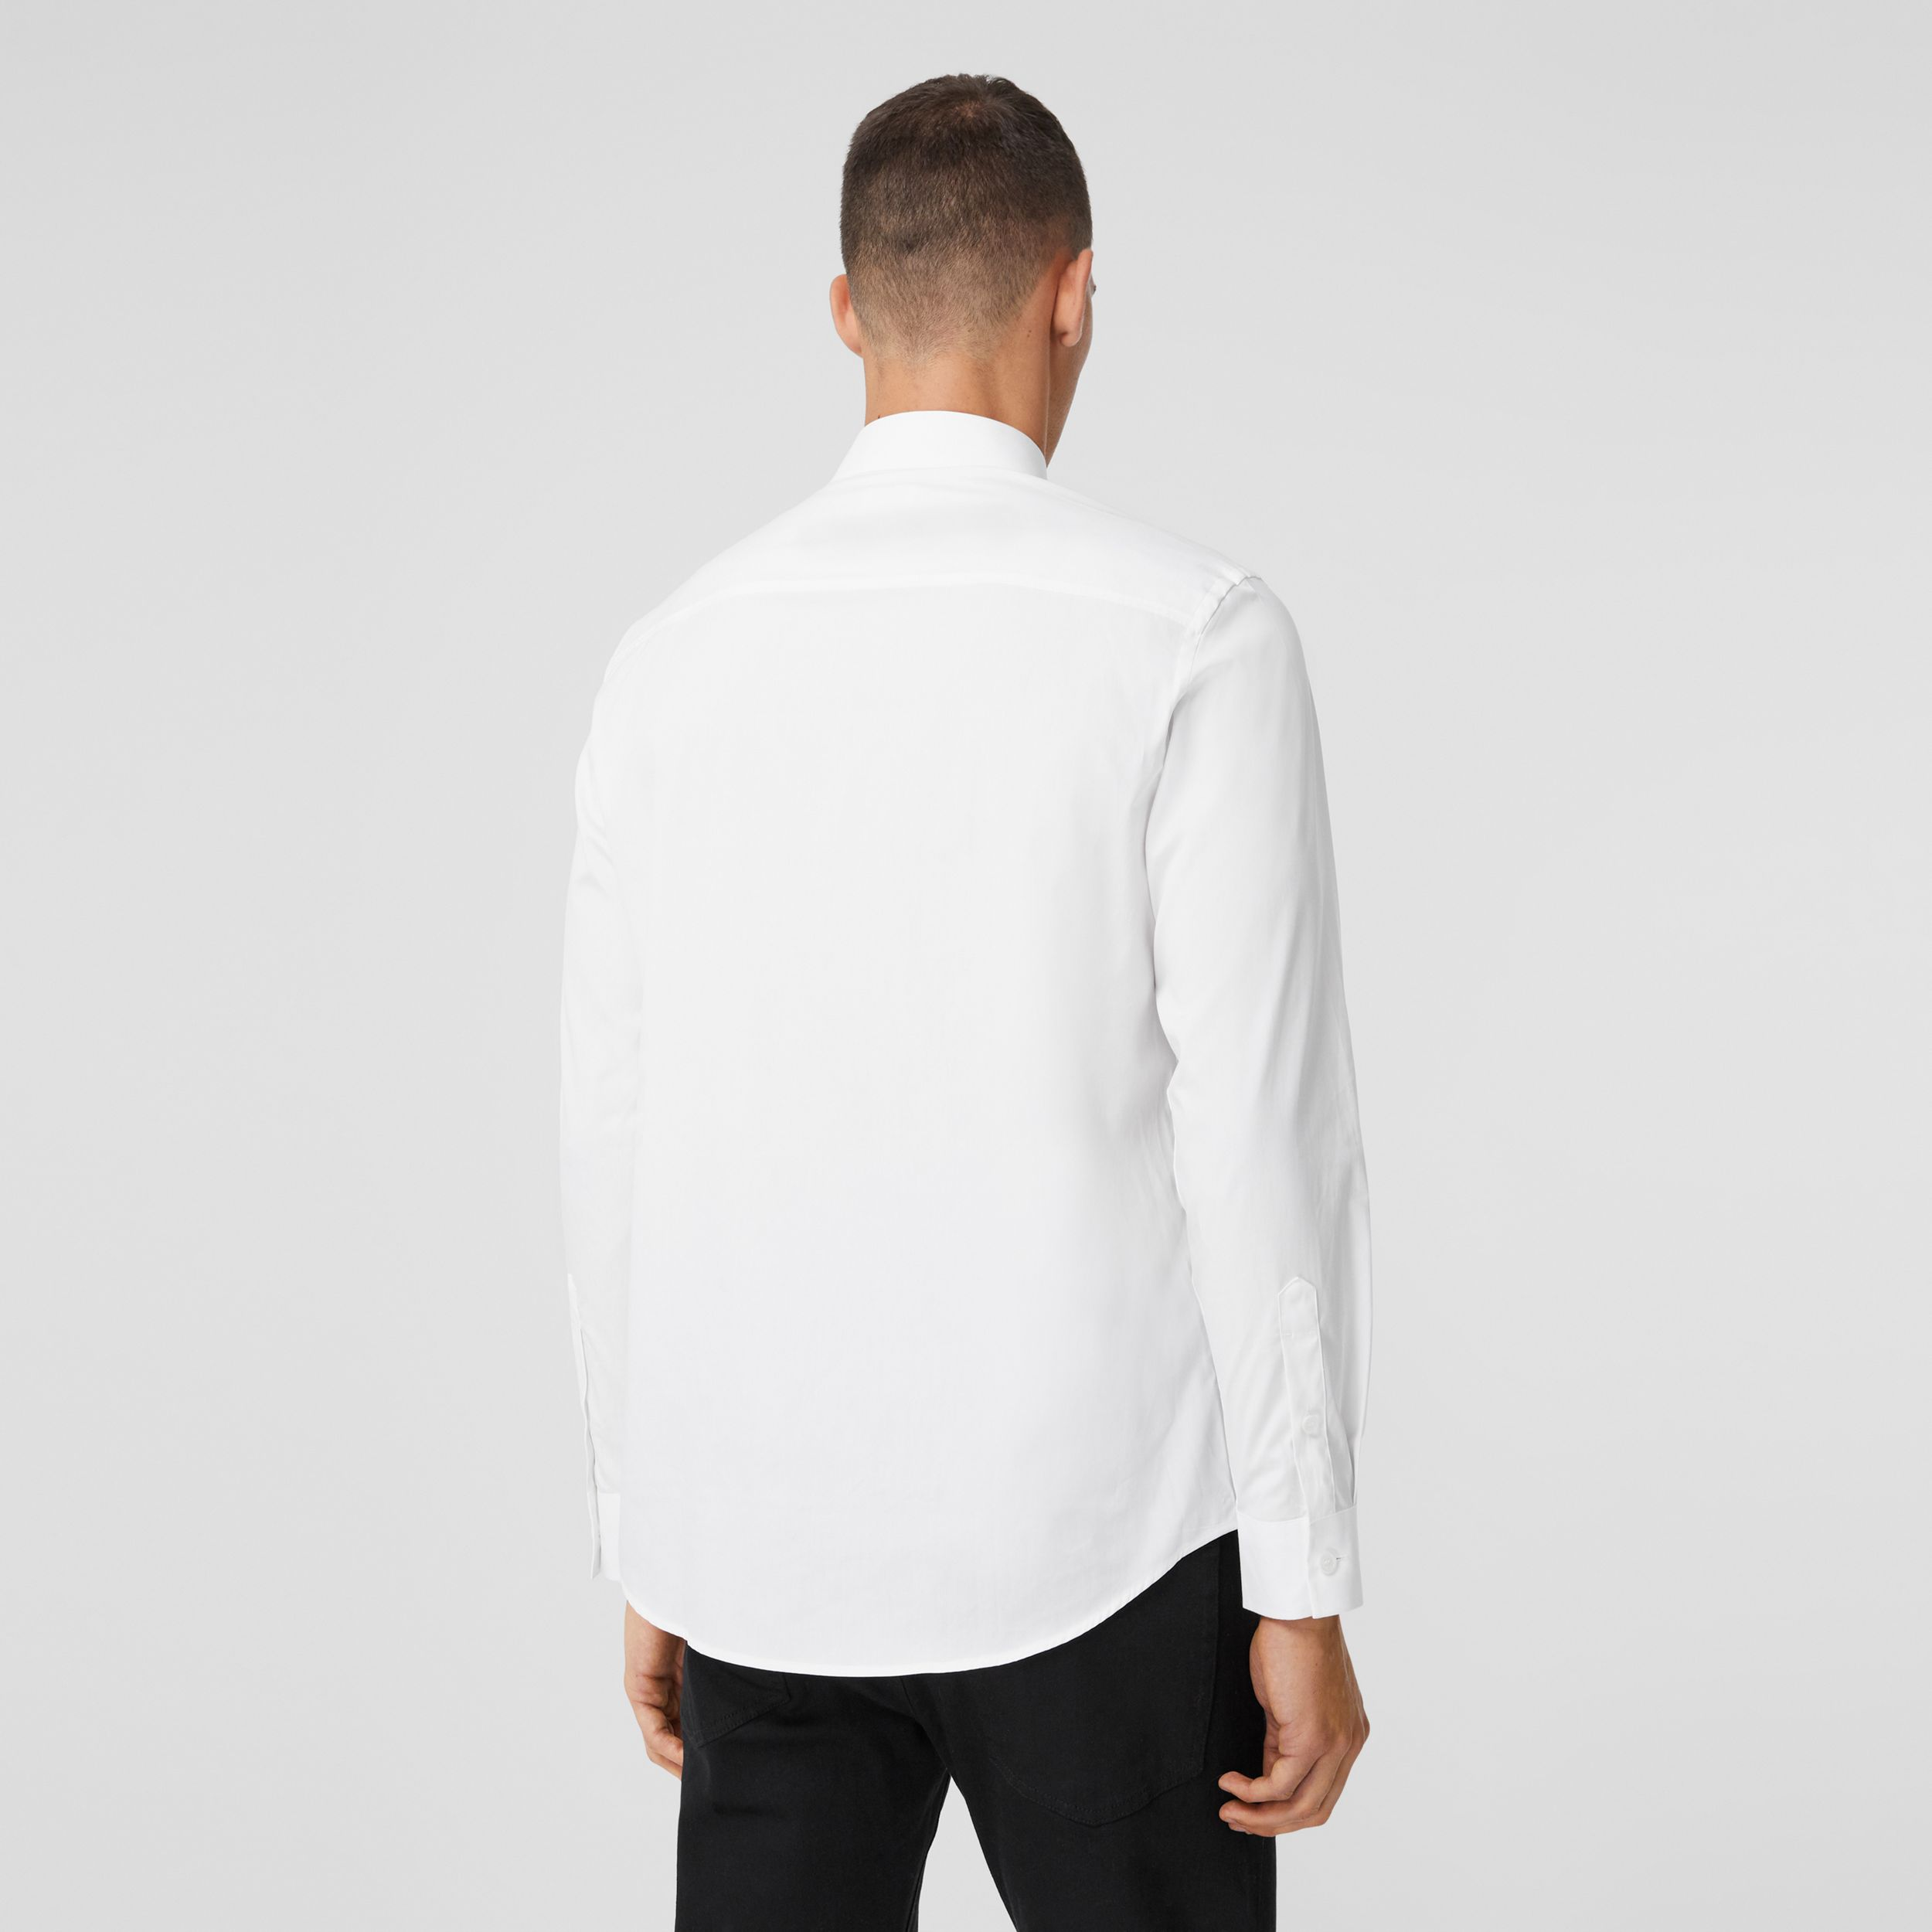 Monogram Motif Stretch Cotton Poplin Shirt in White - Men | Burberry Australia - 3